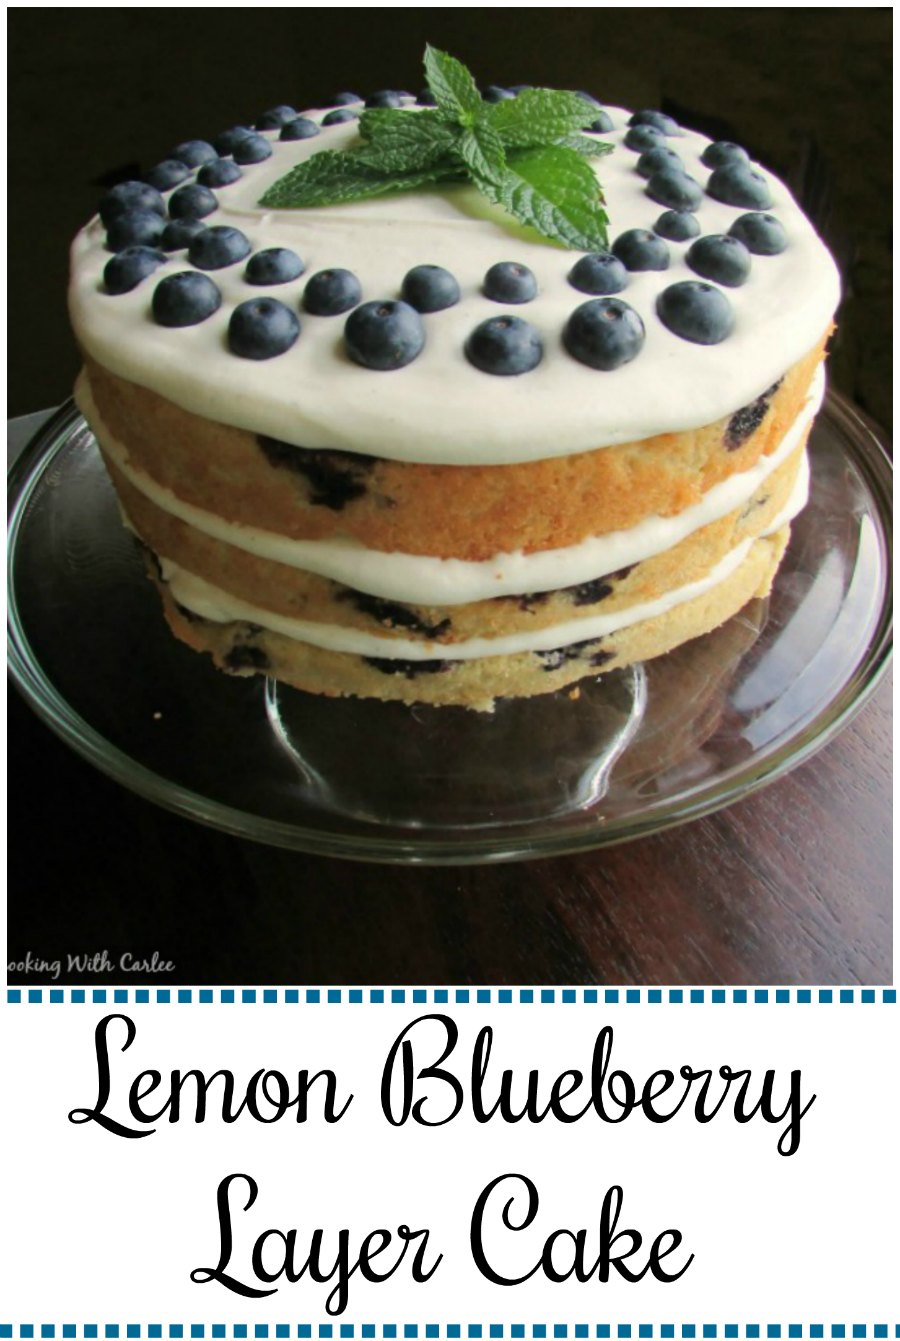 Three layers of luscious lemon cake dotted with blueberries sandwiching cream cheese frosting for an out of this world dessert experience.